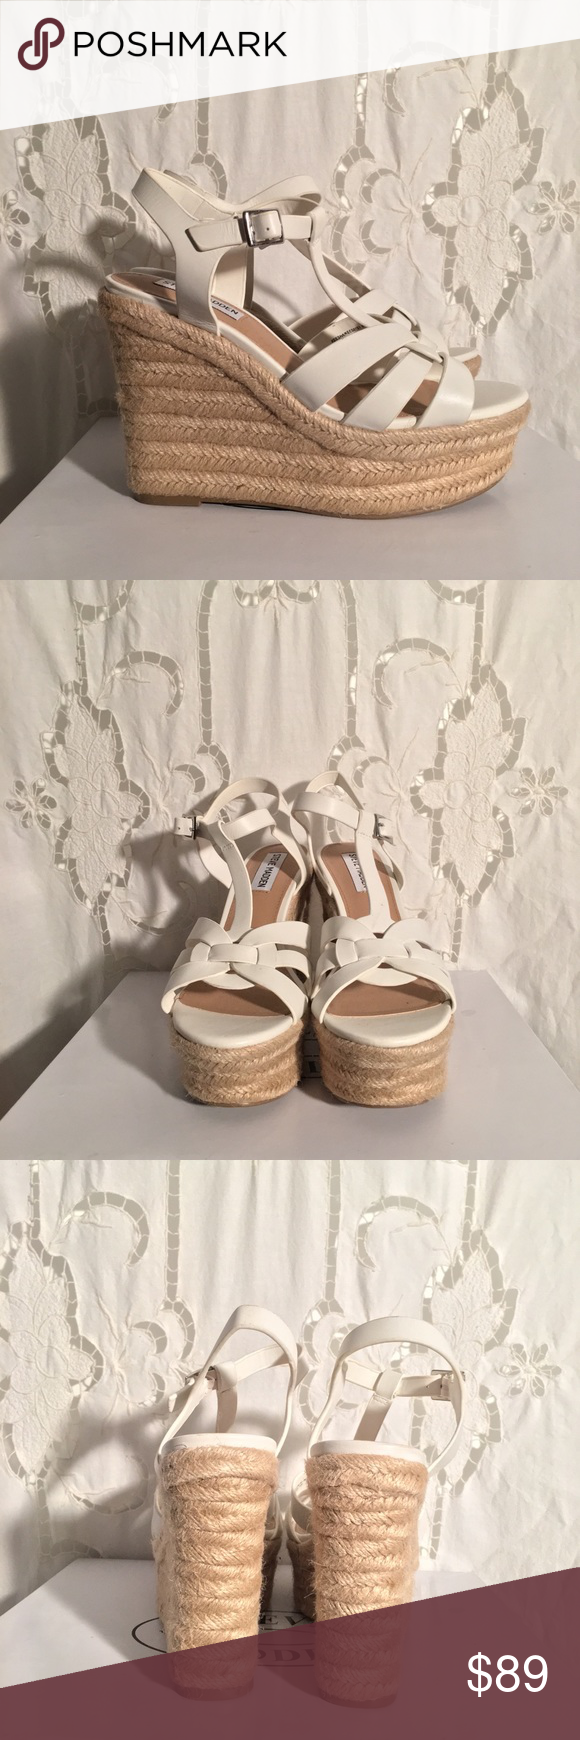 61270c5335c Steve Madden KEESHA White Leather Wedges These YSL inspired wedges ...